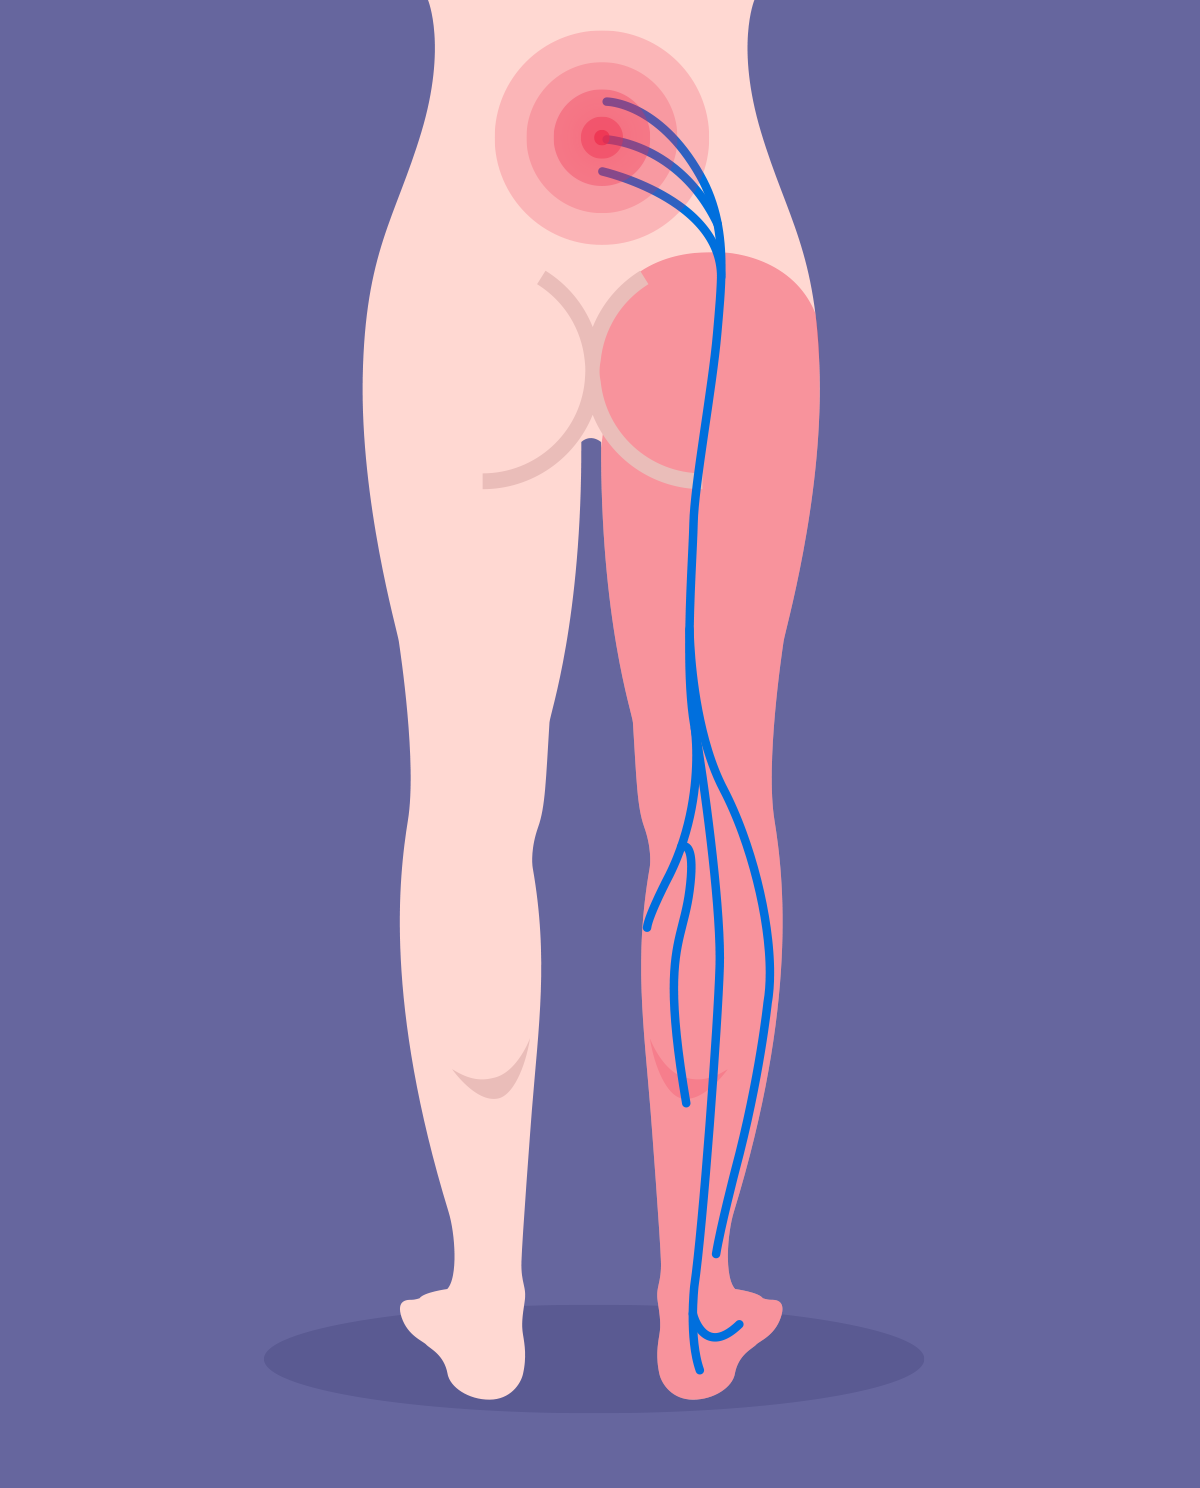 Sciatica - causes, diagnosis